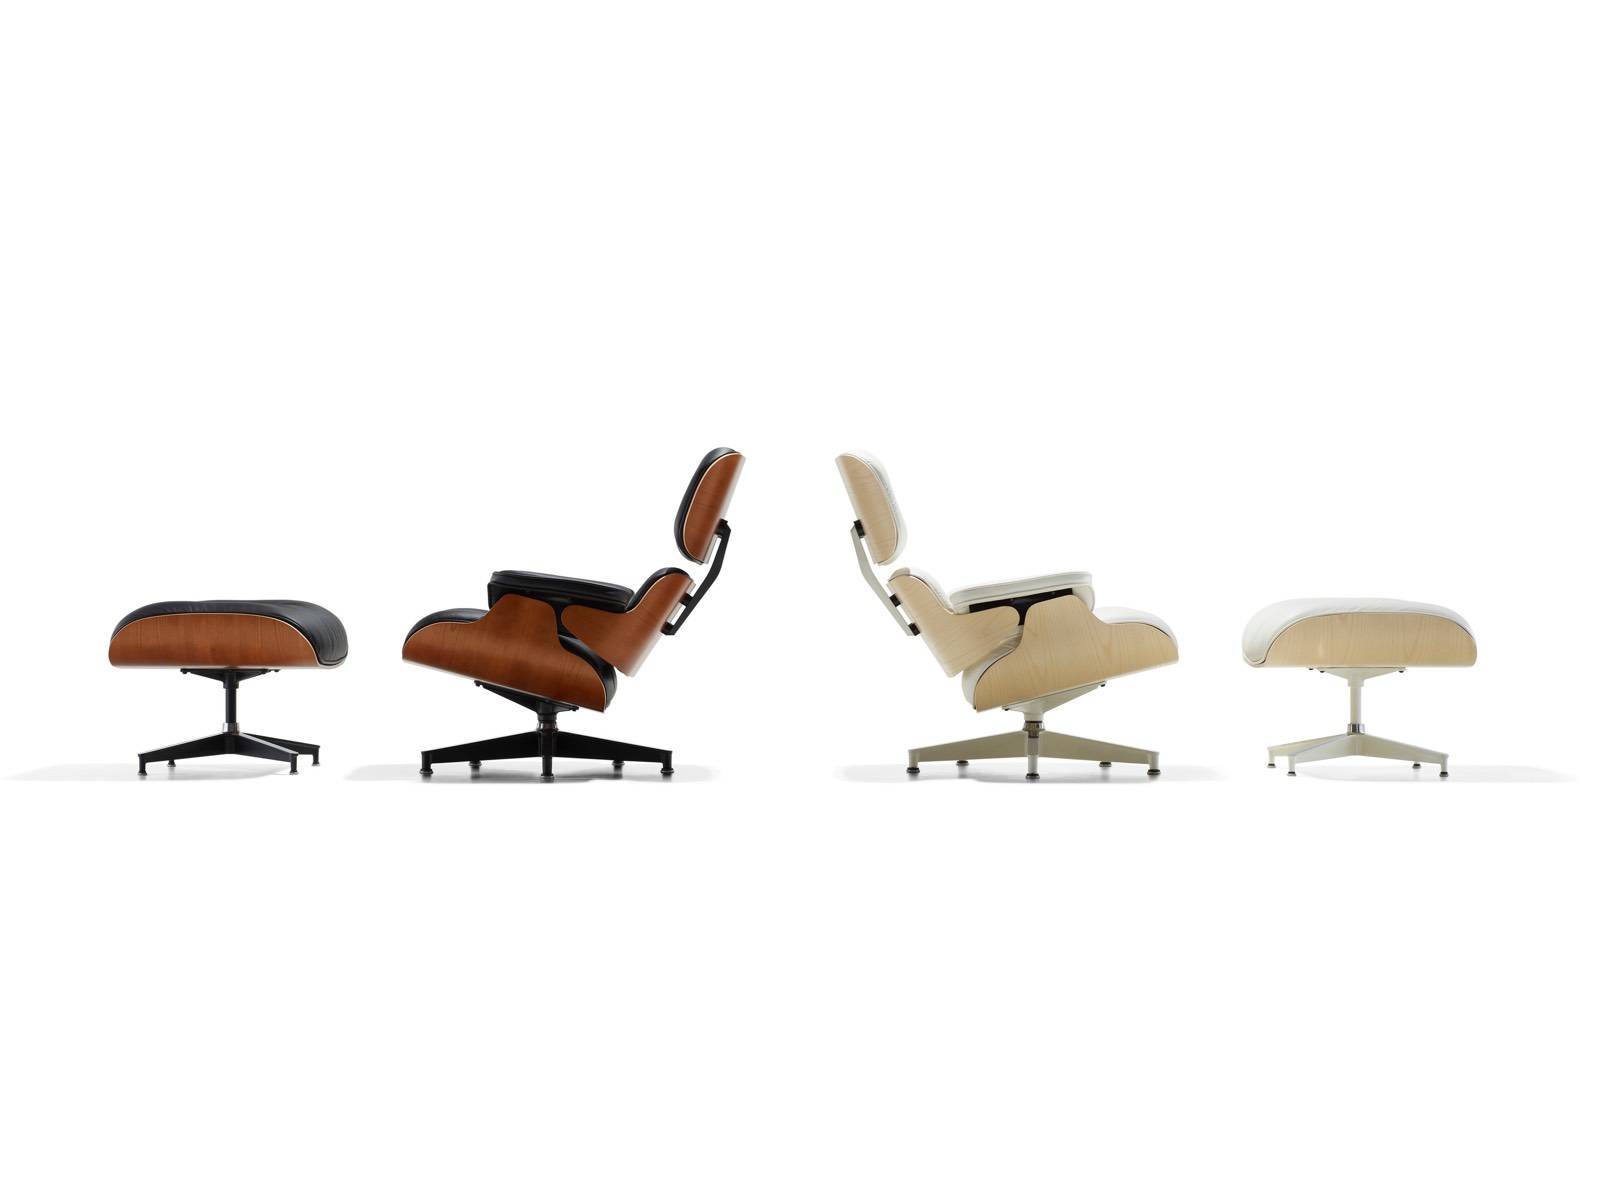 A black leather Eames Lounge Chair and Ottoman and a white leather Eames Lounge Chair and Ottoman, positioned back to back.